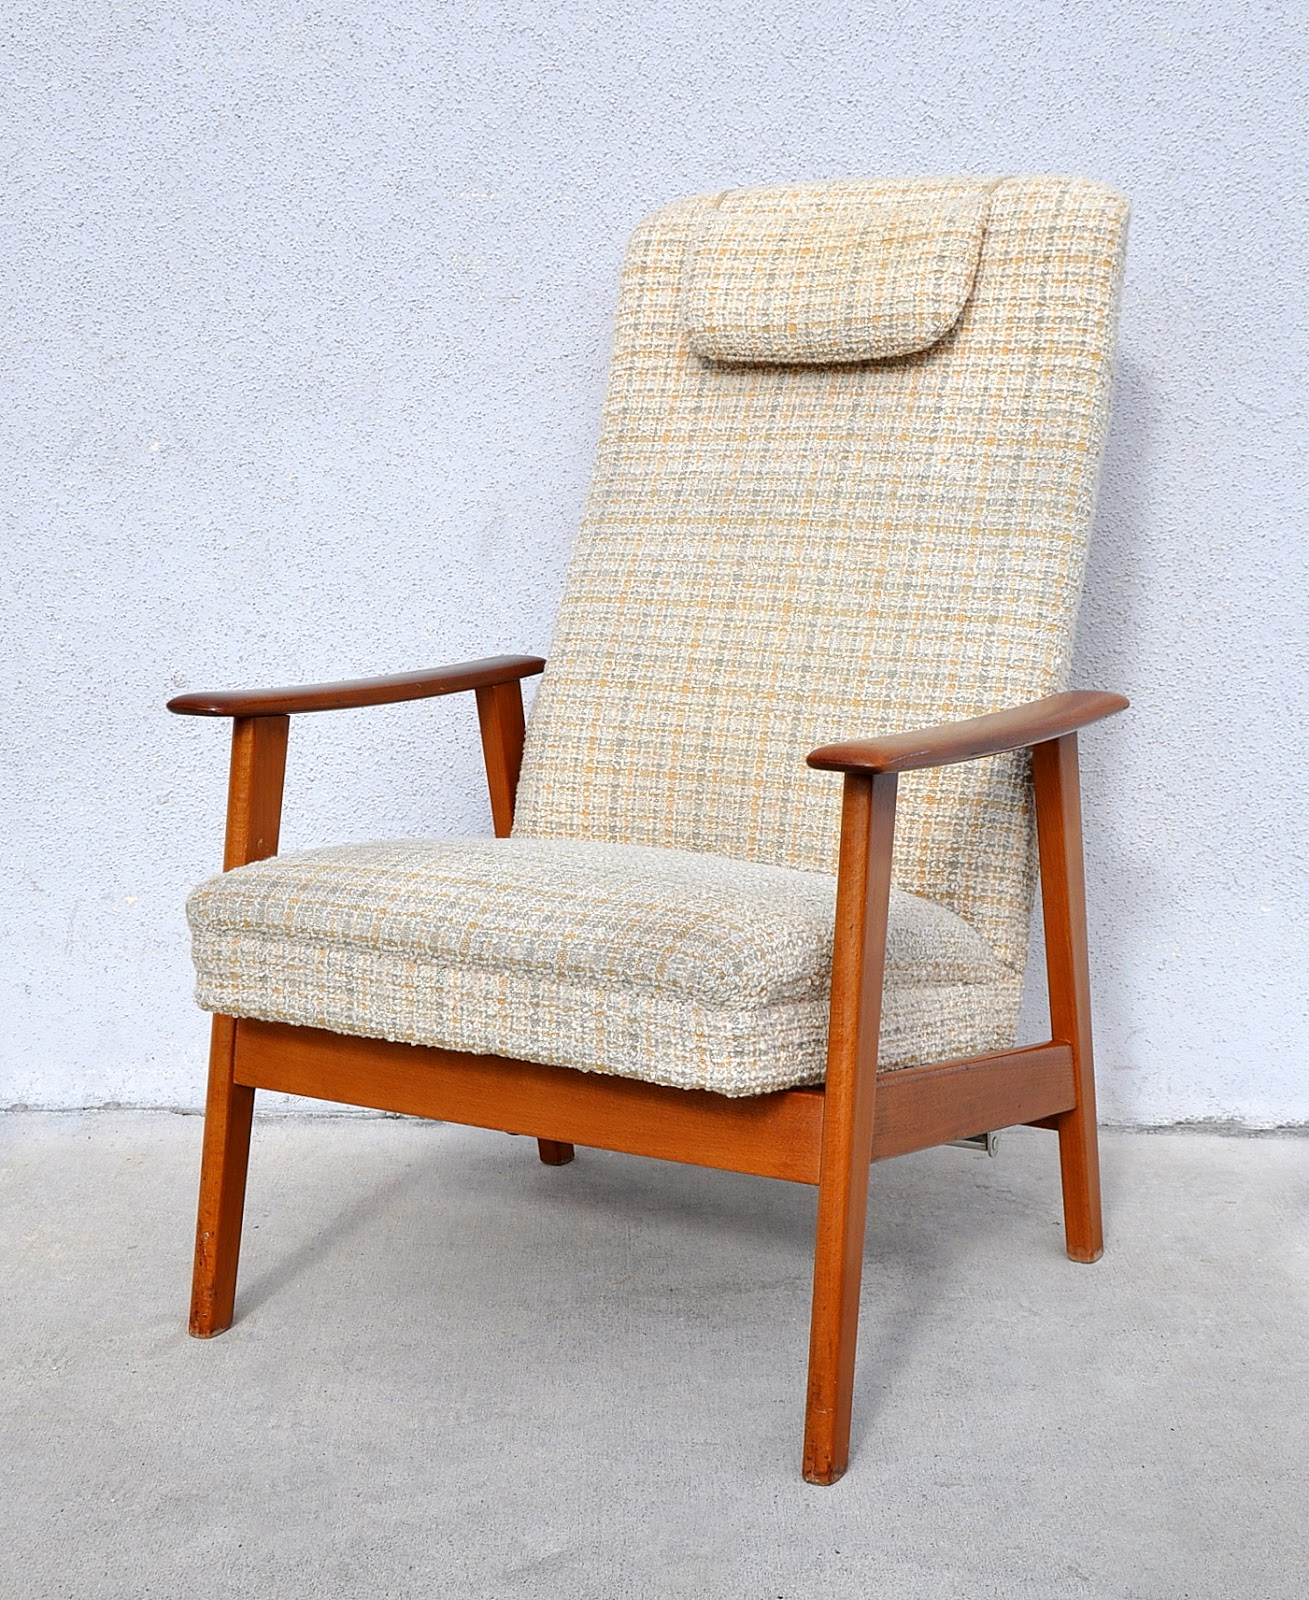 Image of: White Danish Lounge Chair